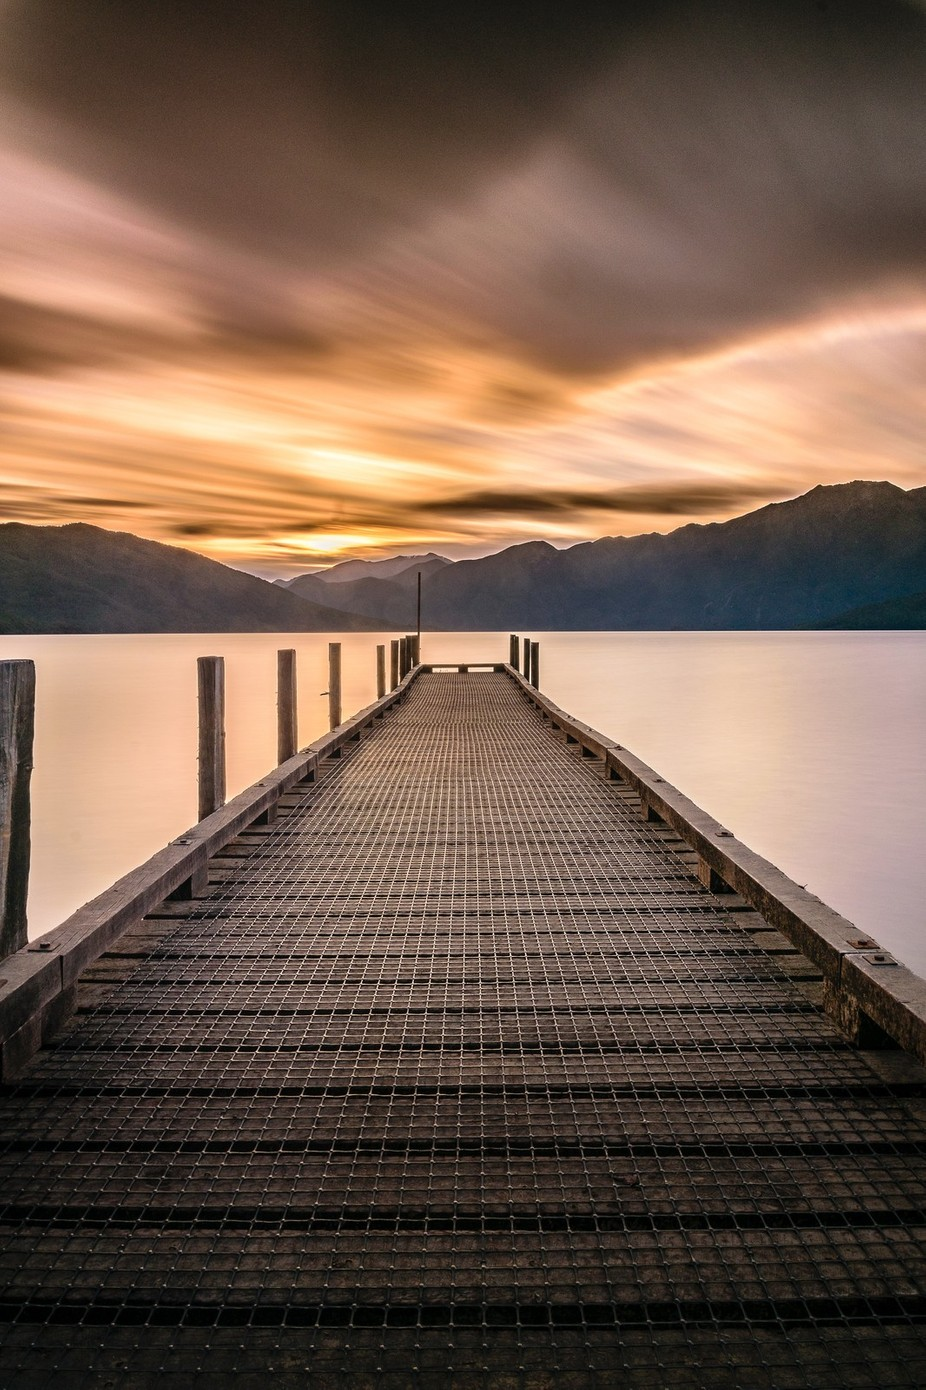 Evening by the lake by Matt_corb - Clouds In Movement Photo Contest